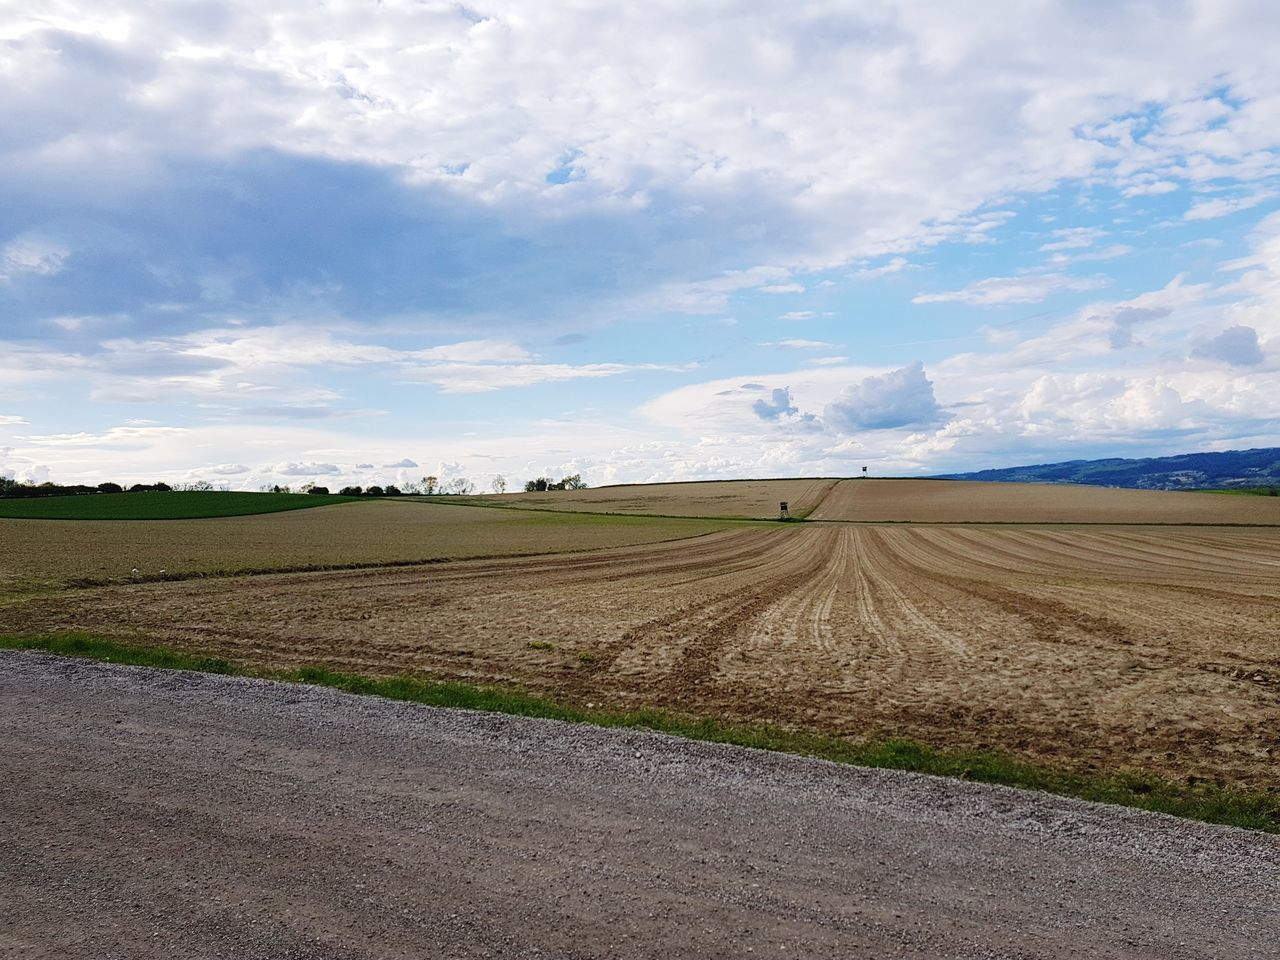 landscape, sky, cloud - sky, field, tranquil scene, nature, rural scene, scenics, beauty in nature, tranquility, agriculture, day, road, no people, plough, outdoors